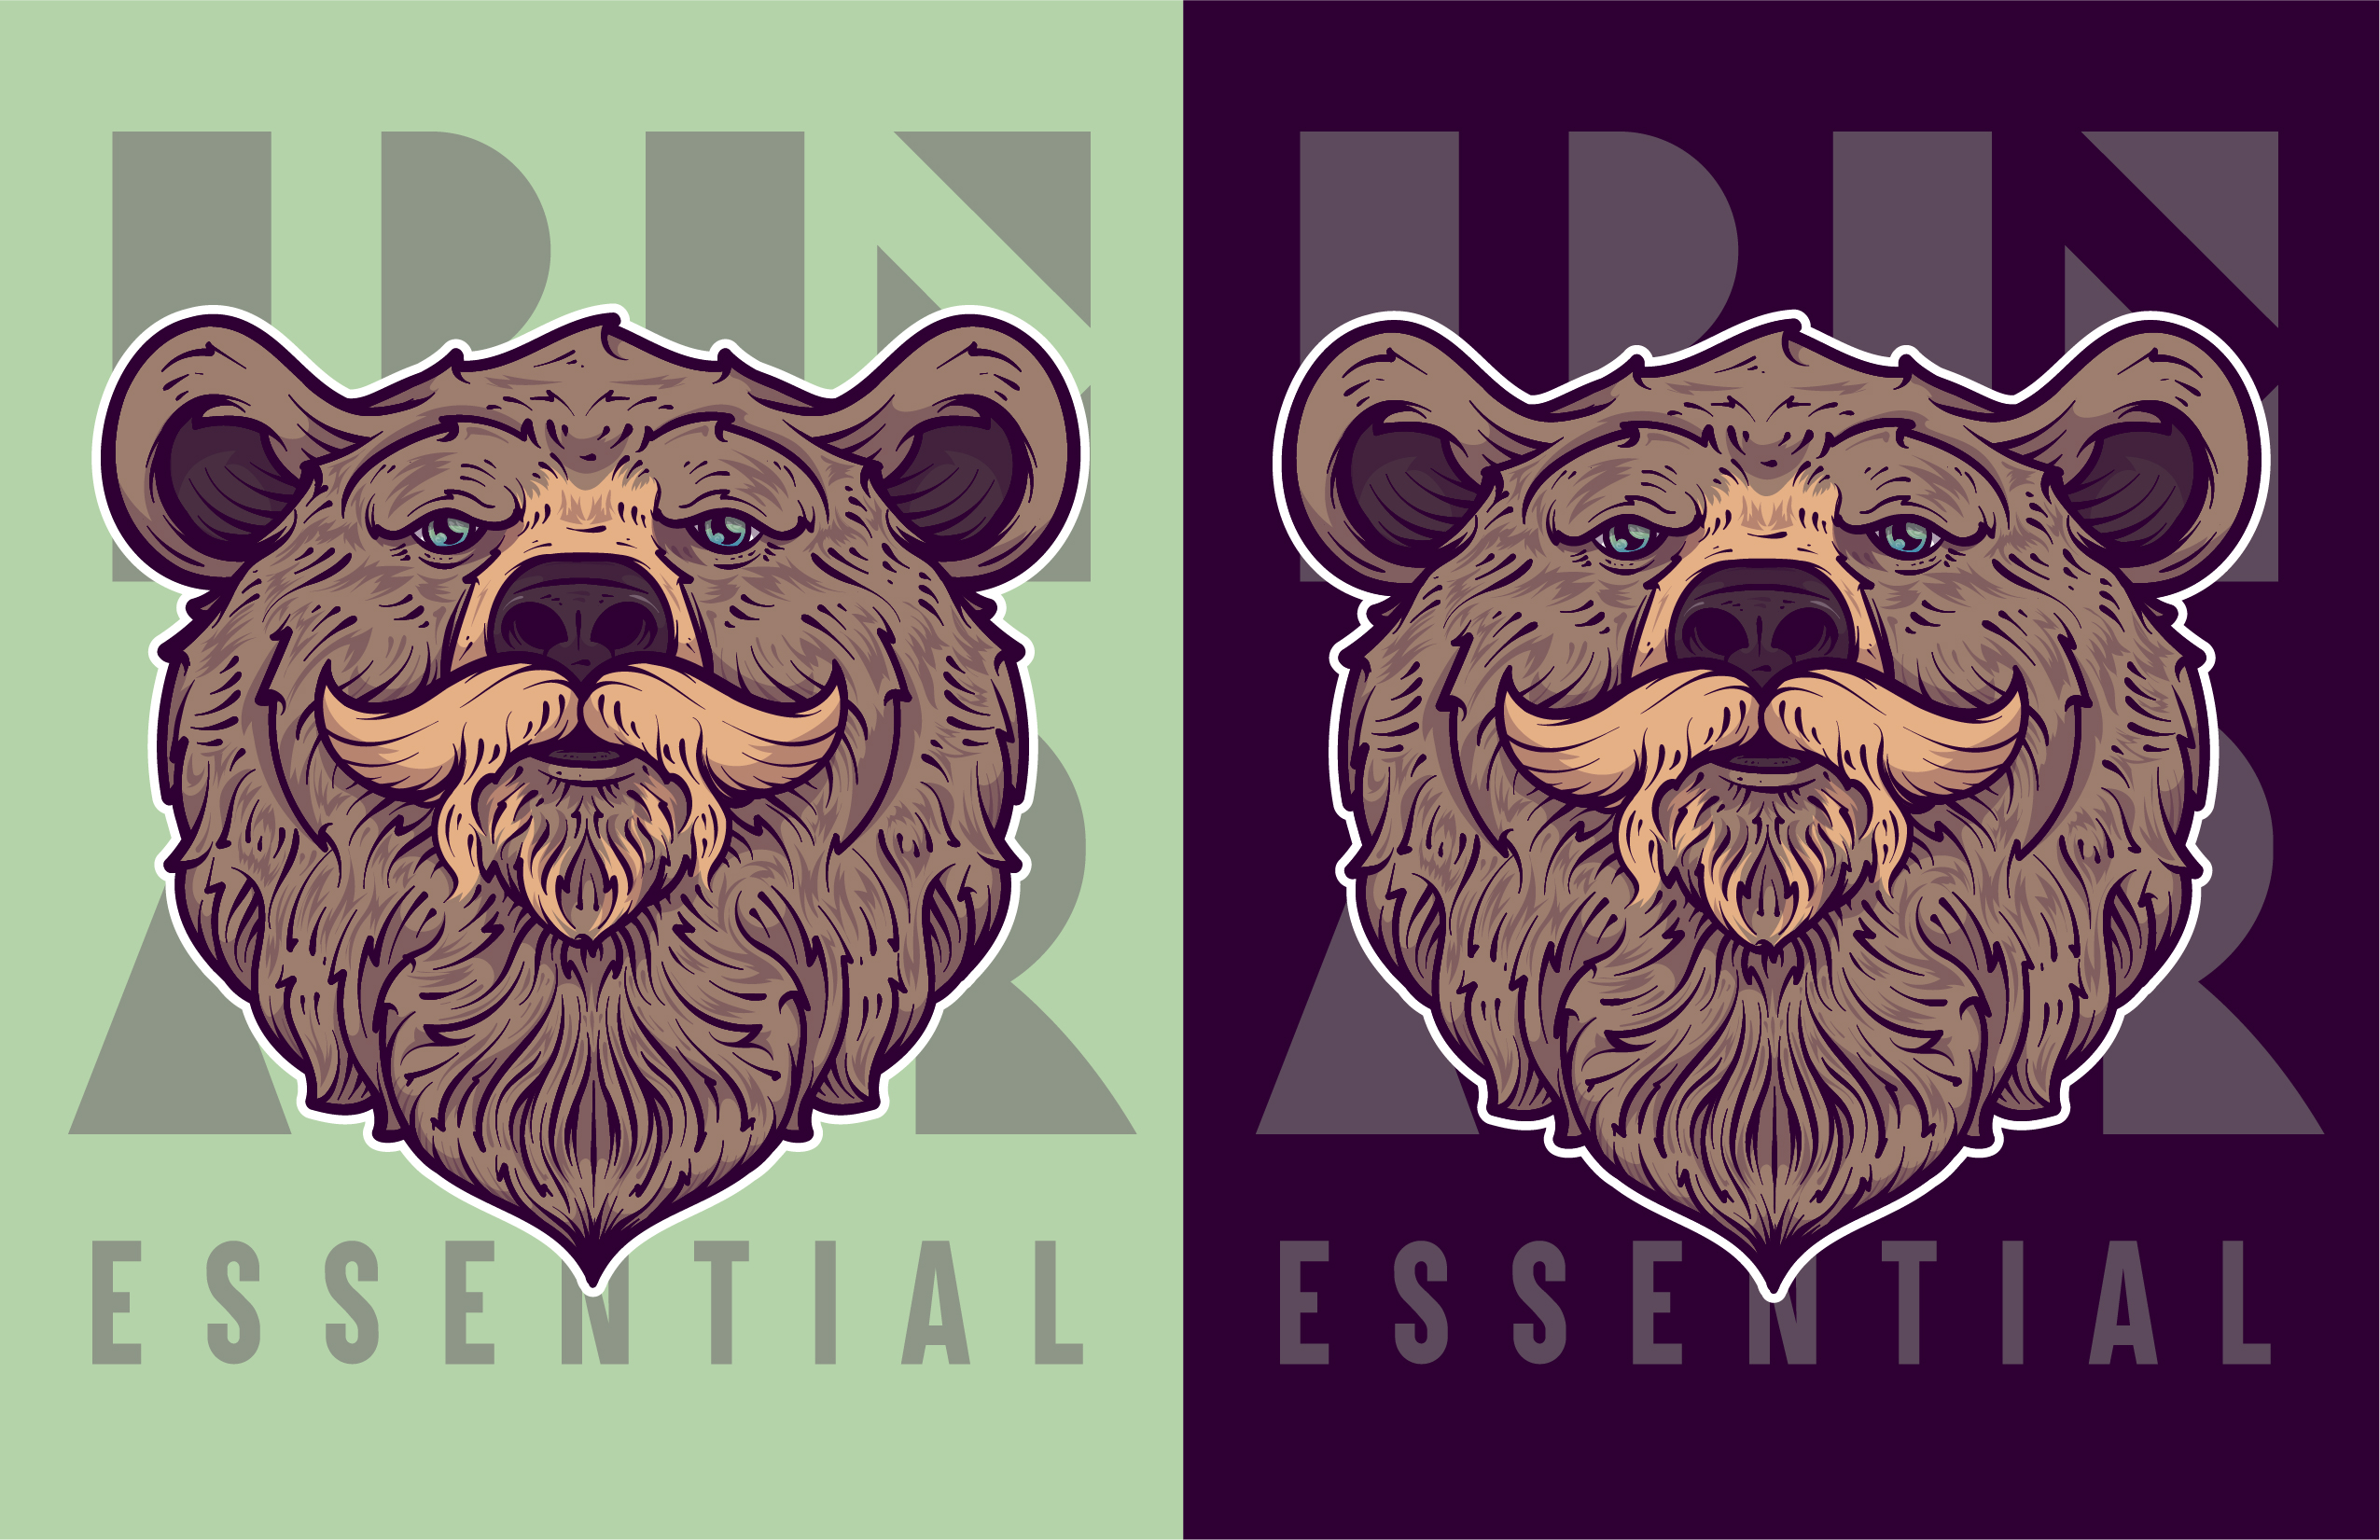 Custom illustration of a brown bear with a mustache